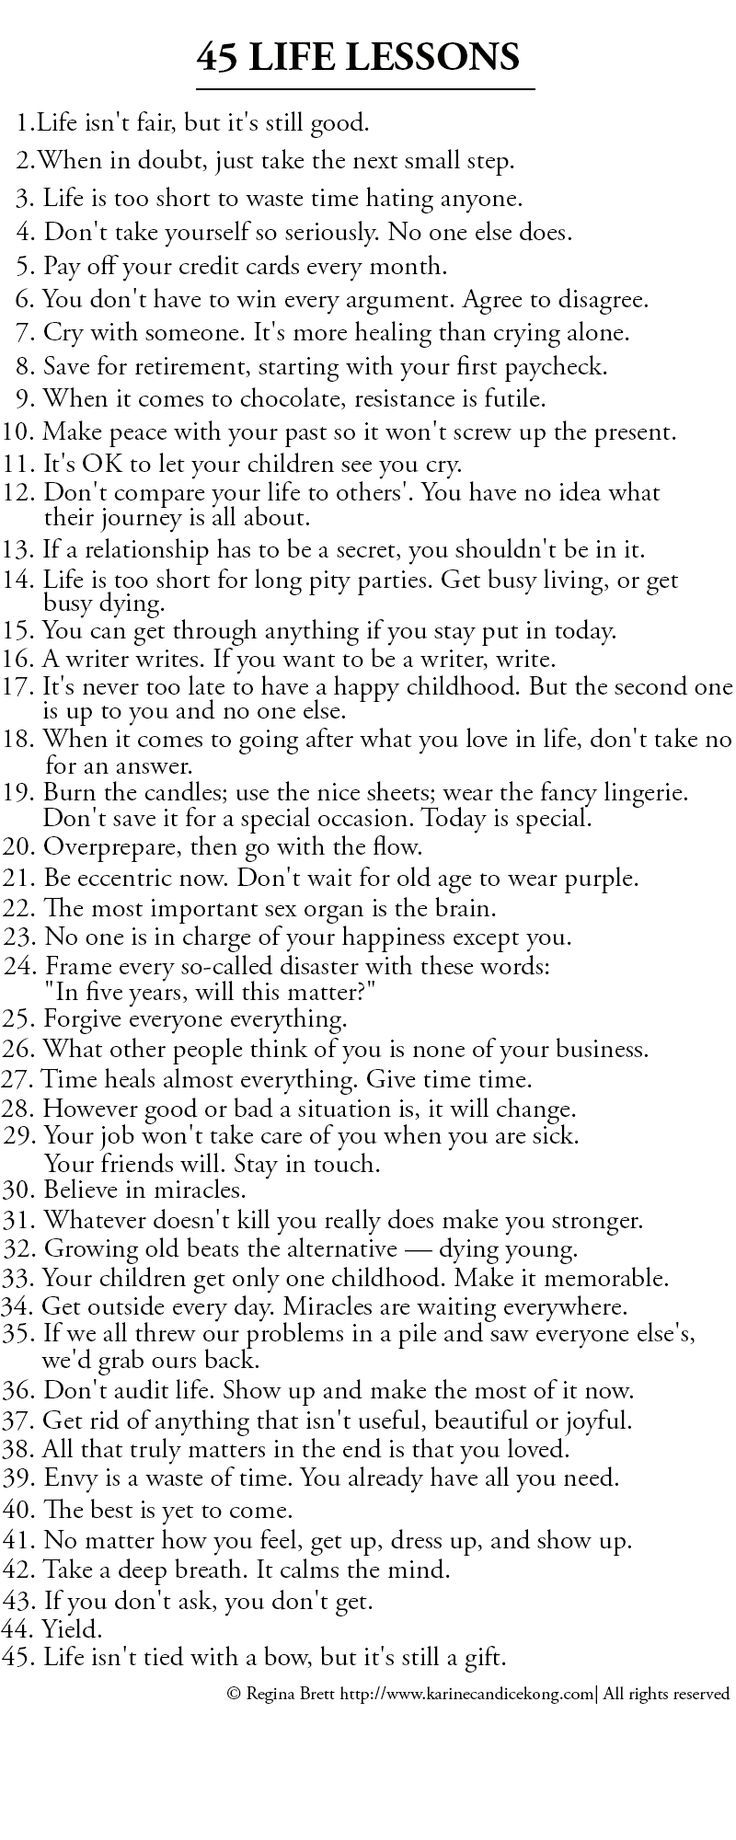 Quote List Wisdom Quotes  List Of 45 Great Life Lessons To Life By. Omg